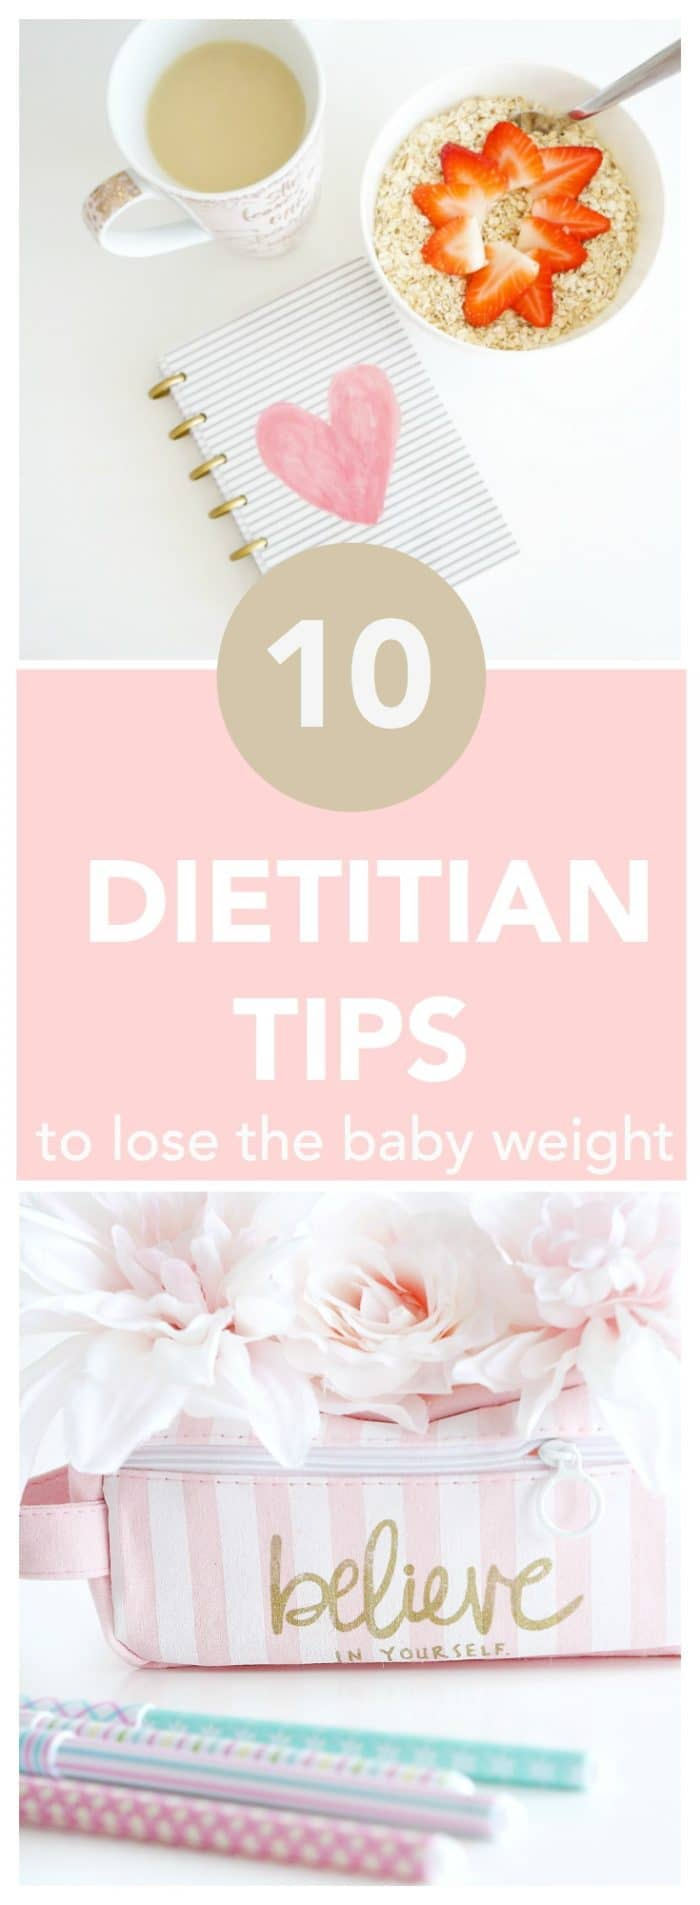 Strategies to Help Lose the Weight After Pregnancy